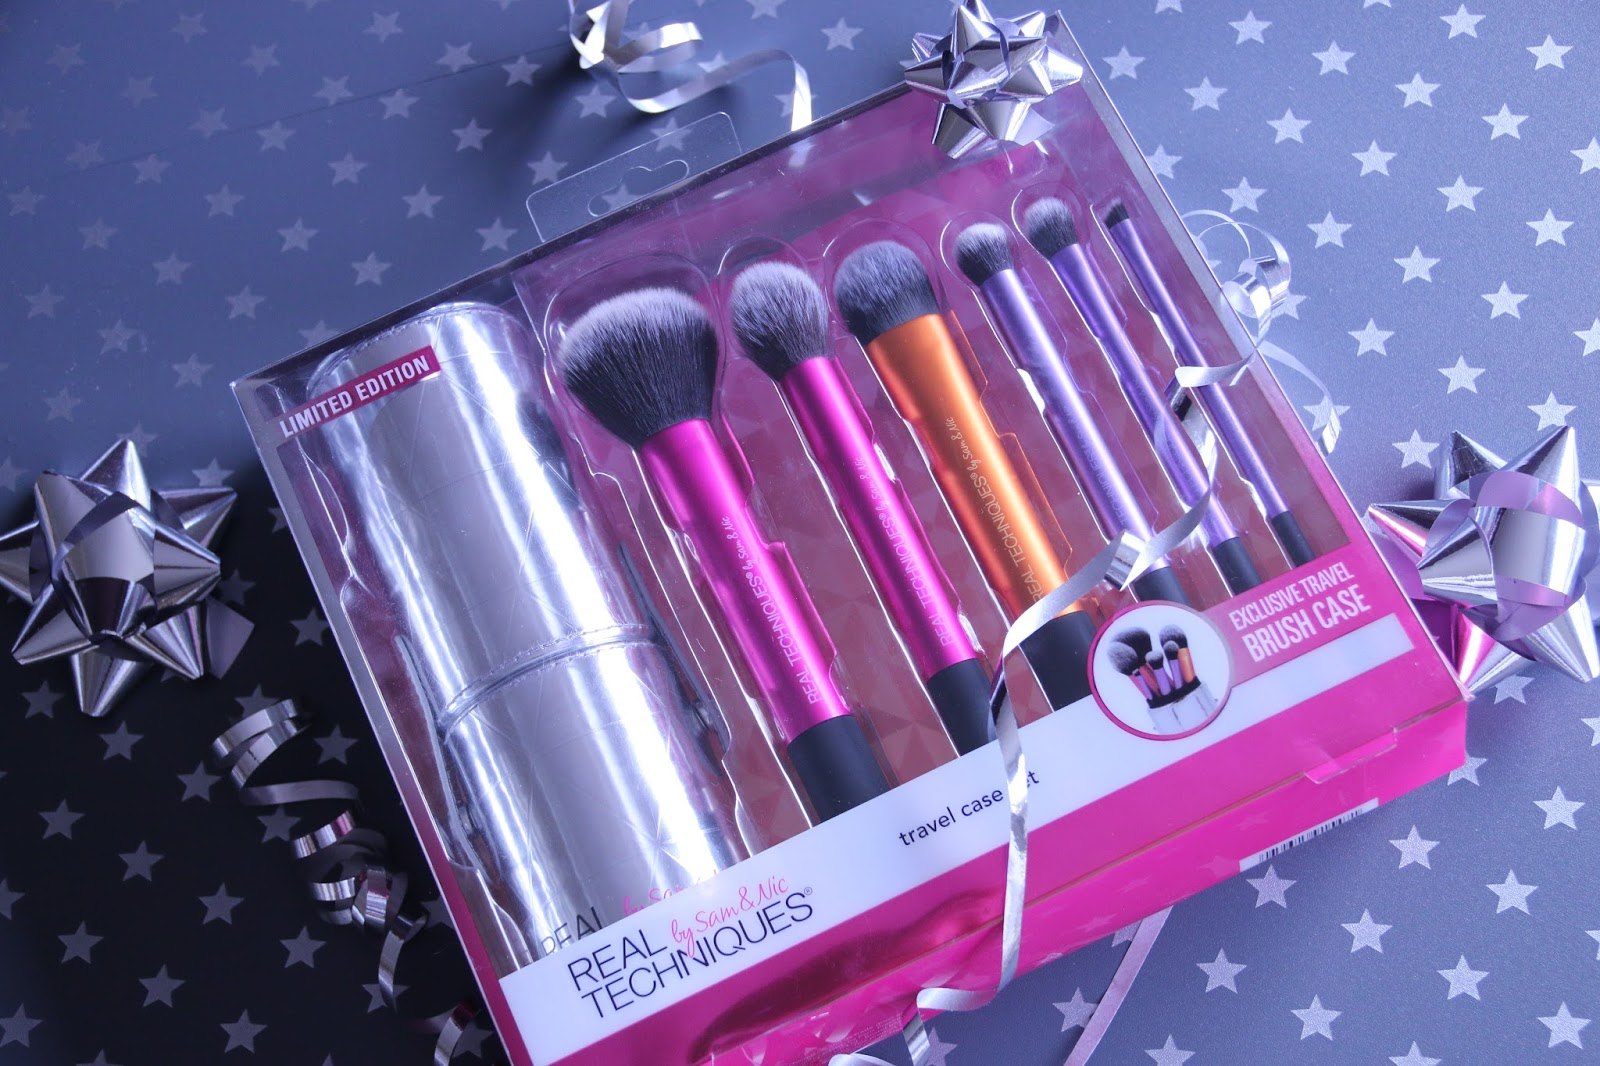 Real Techniques Travel Case Set Makeup Brushes Image